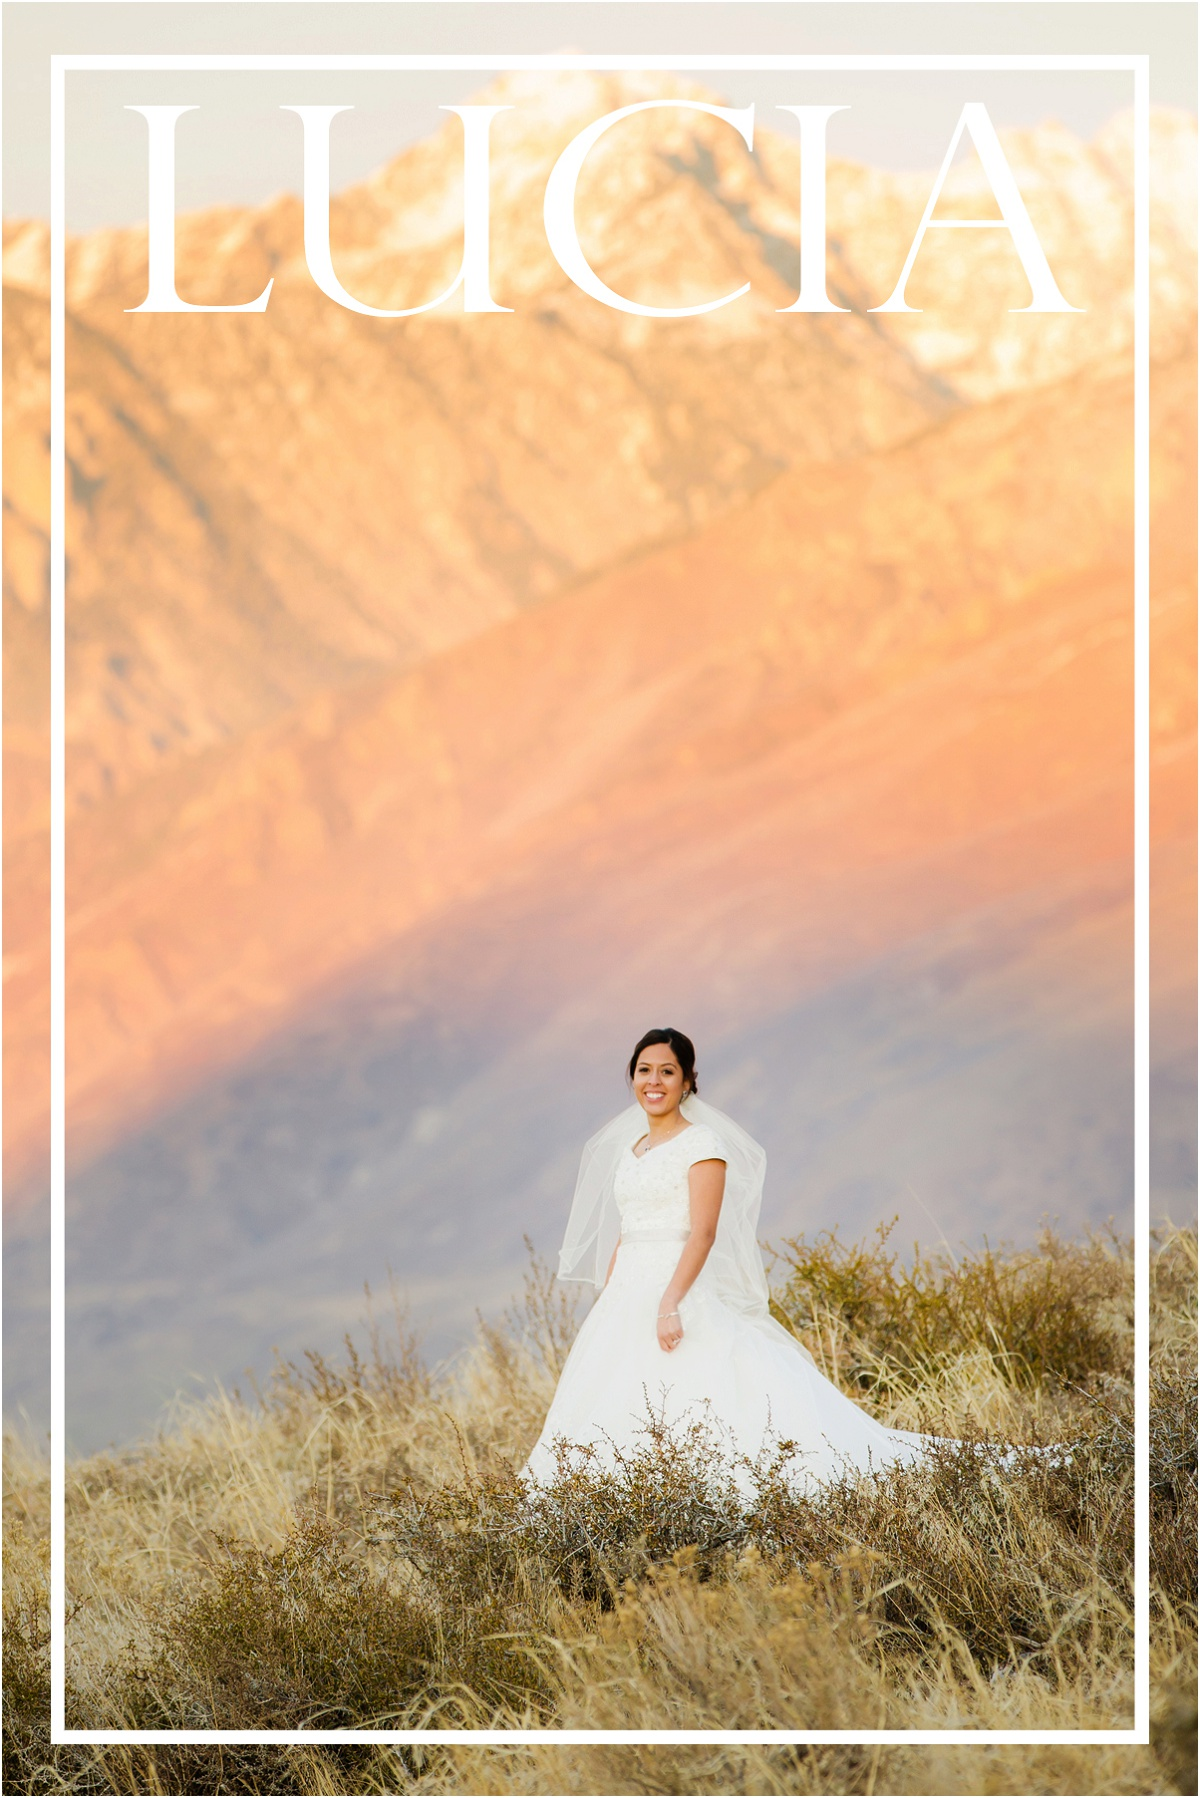 Terra Cooper Photography Weddings Brides 2015_5387.jpg